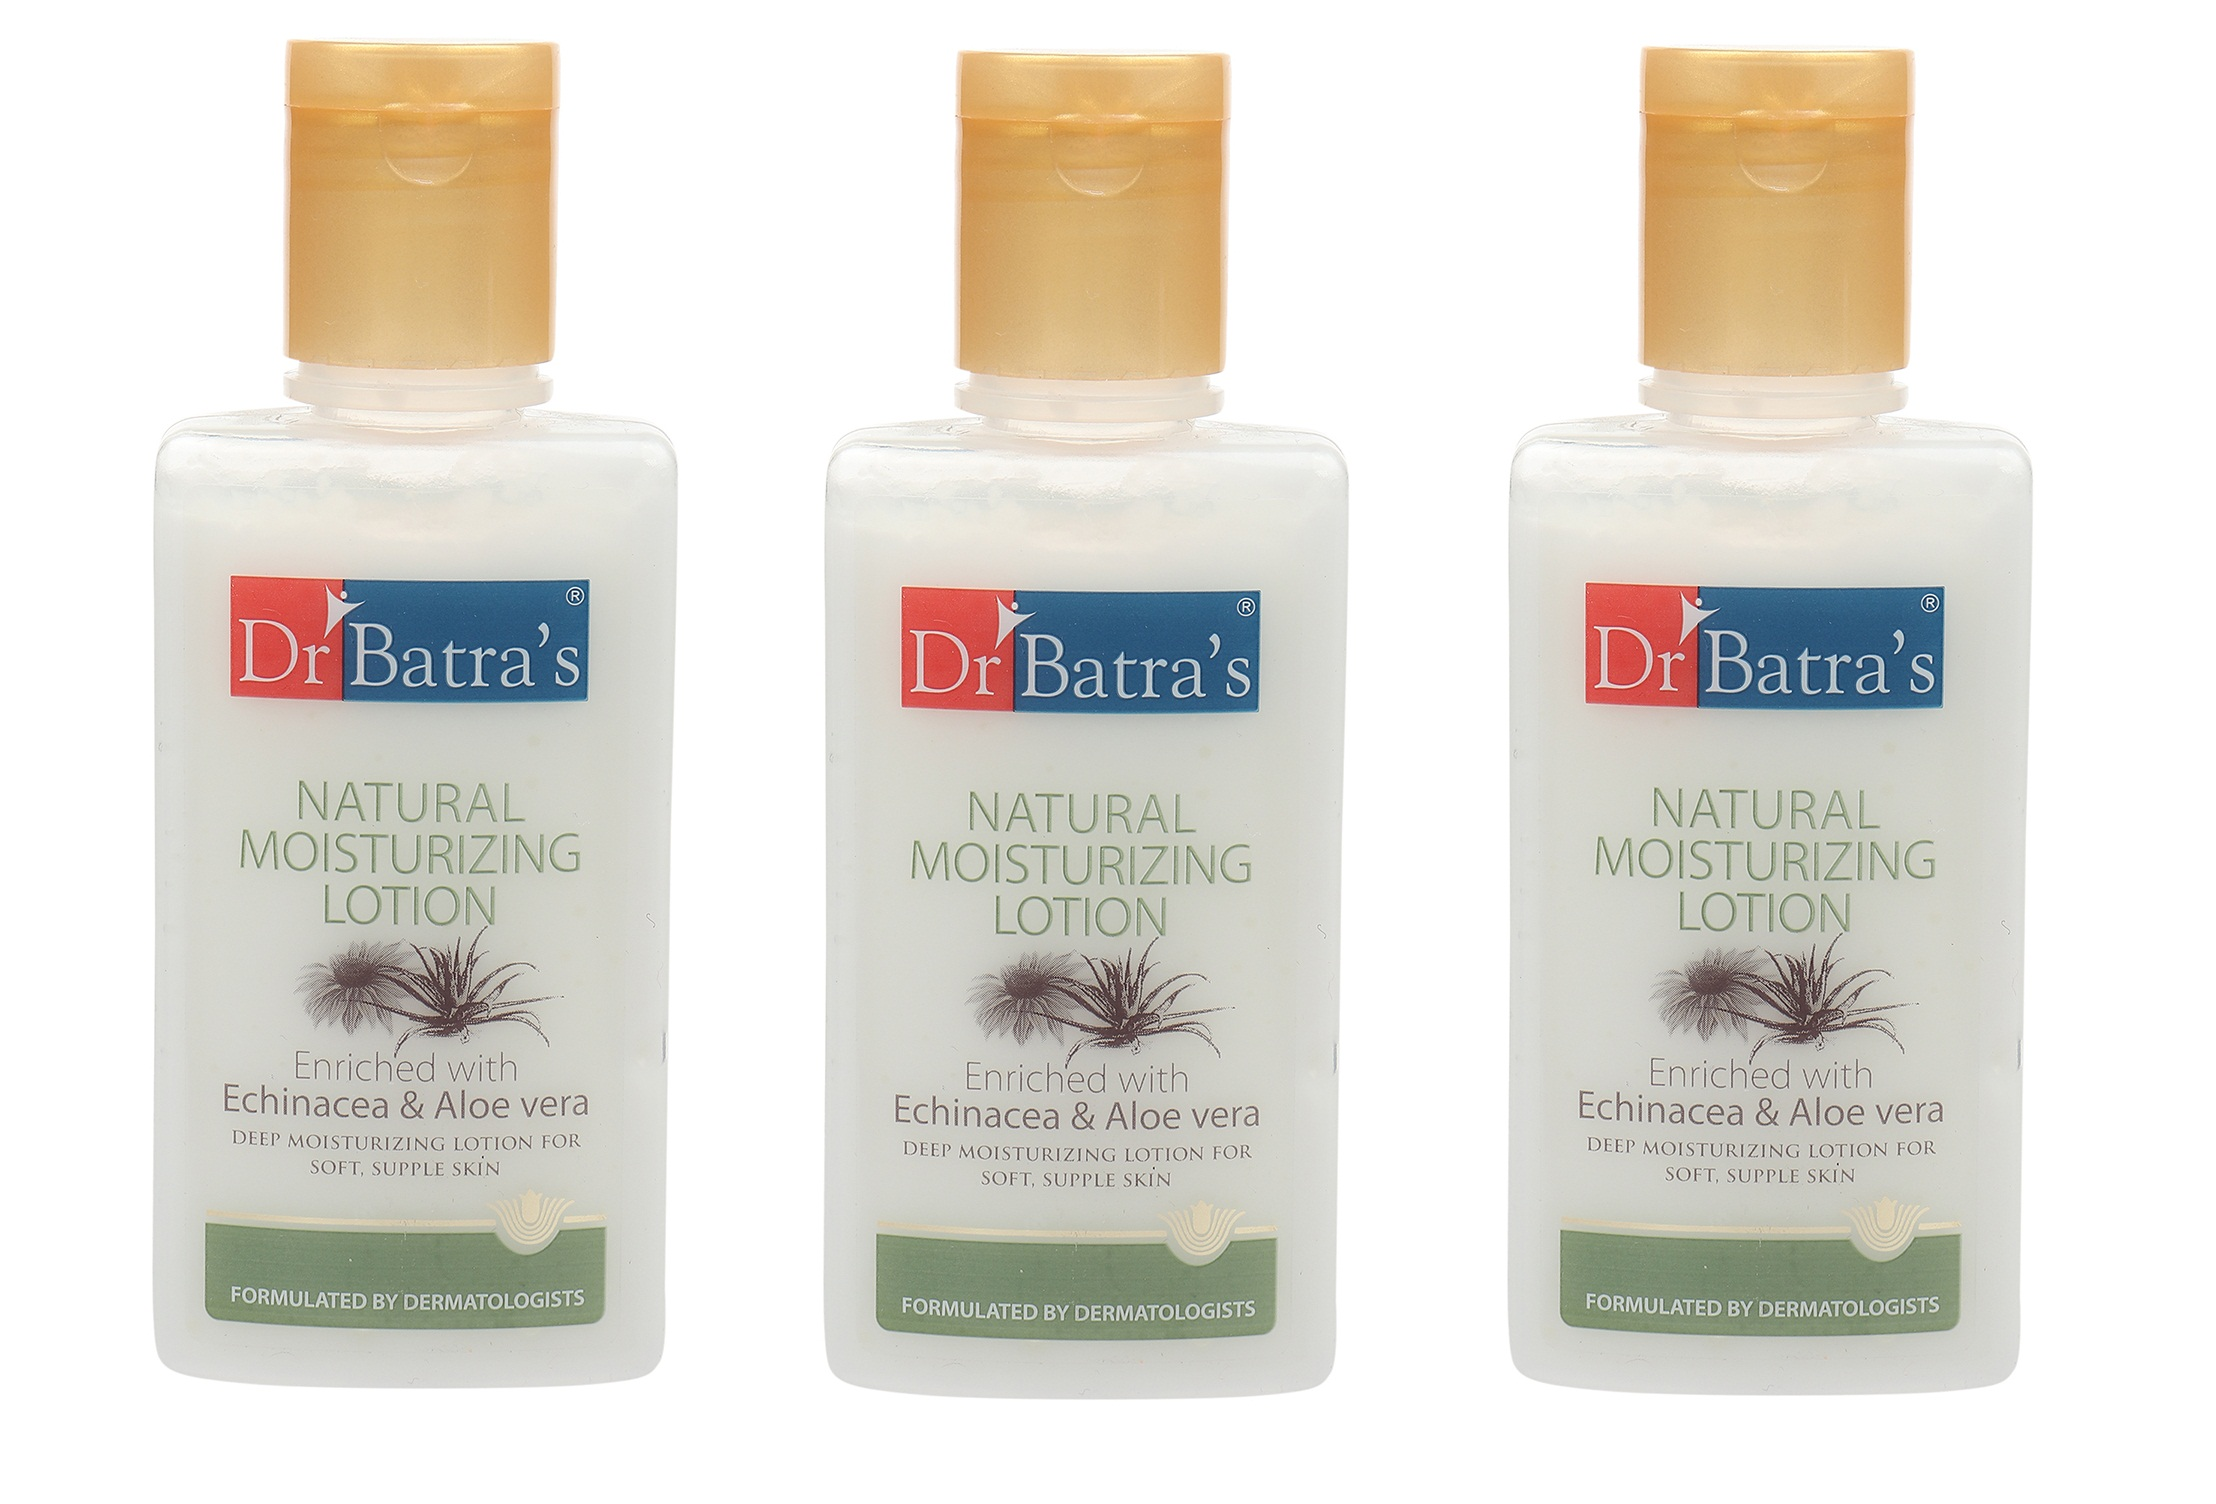 Dr Batra's | Dr Batra's Natural Moisturizing Lotion Enriched With Echinacea Aloe Vera - 100 ml (Pack of 3)